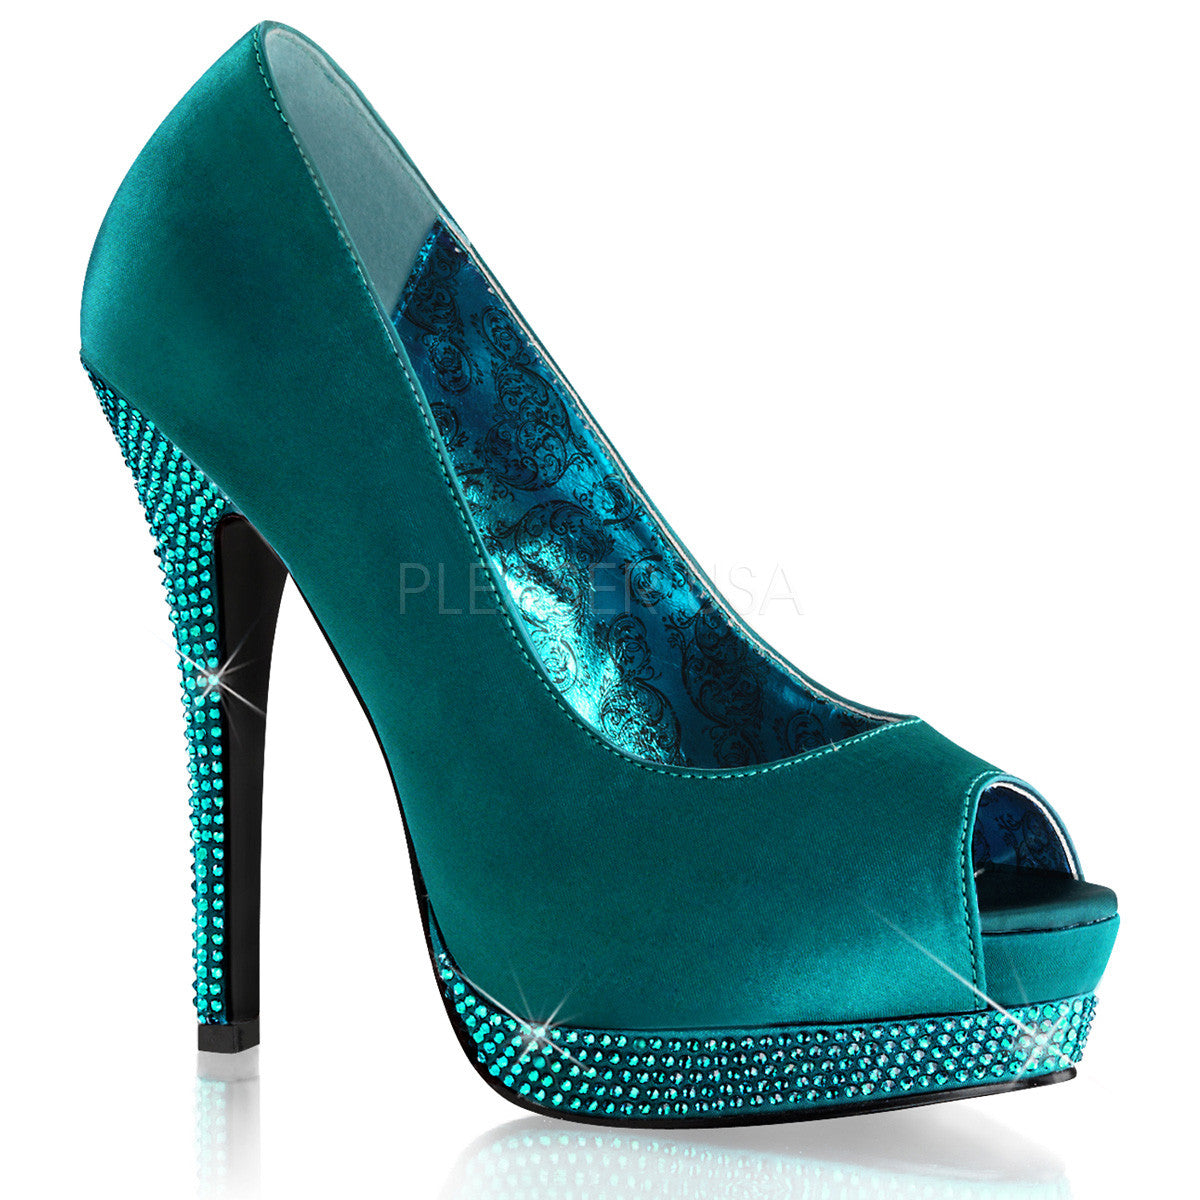 Bordello,BELLA-12R Turquoise Satin Pumps - Shoecup.com